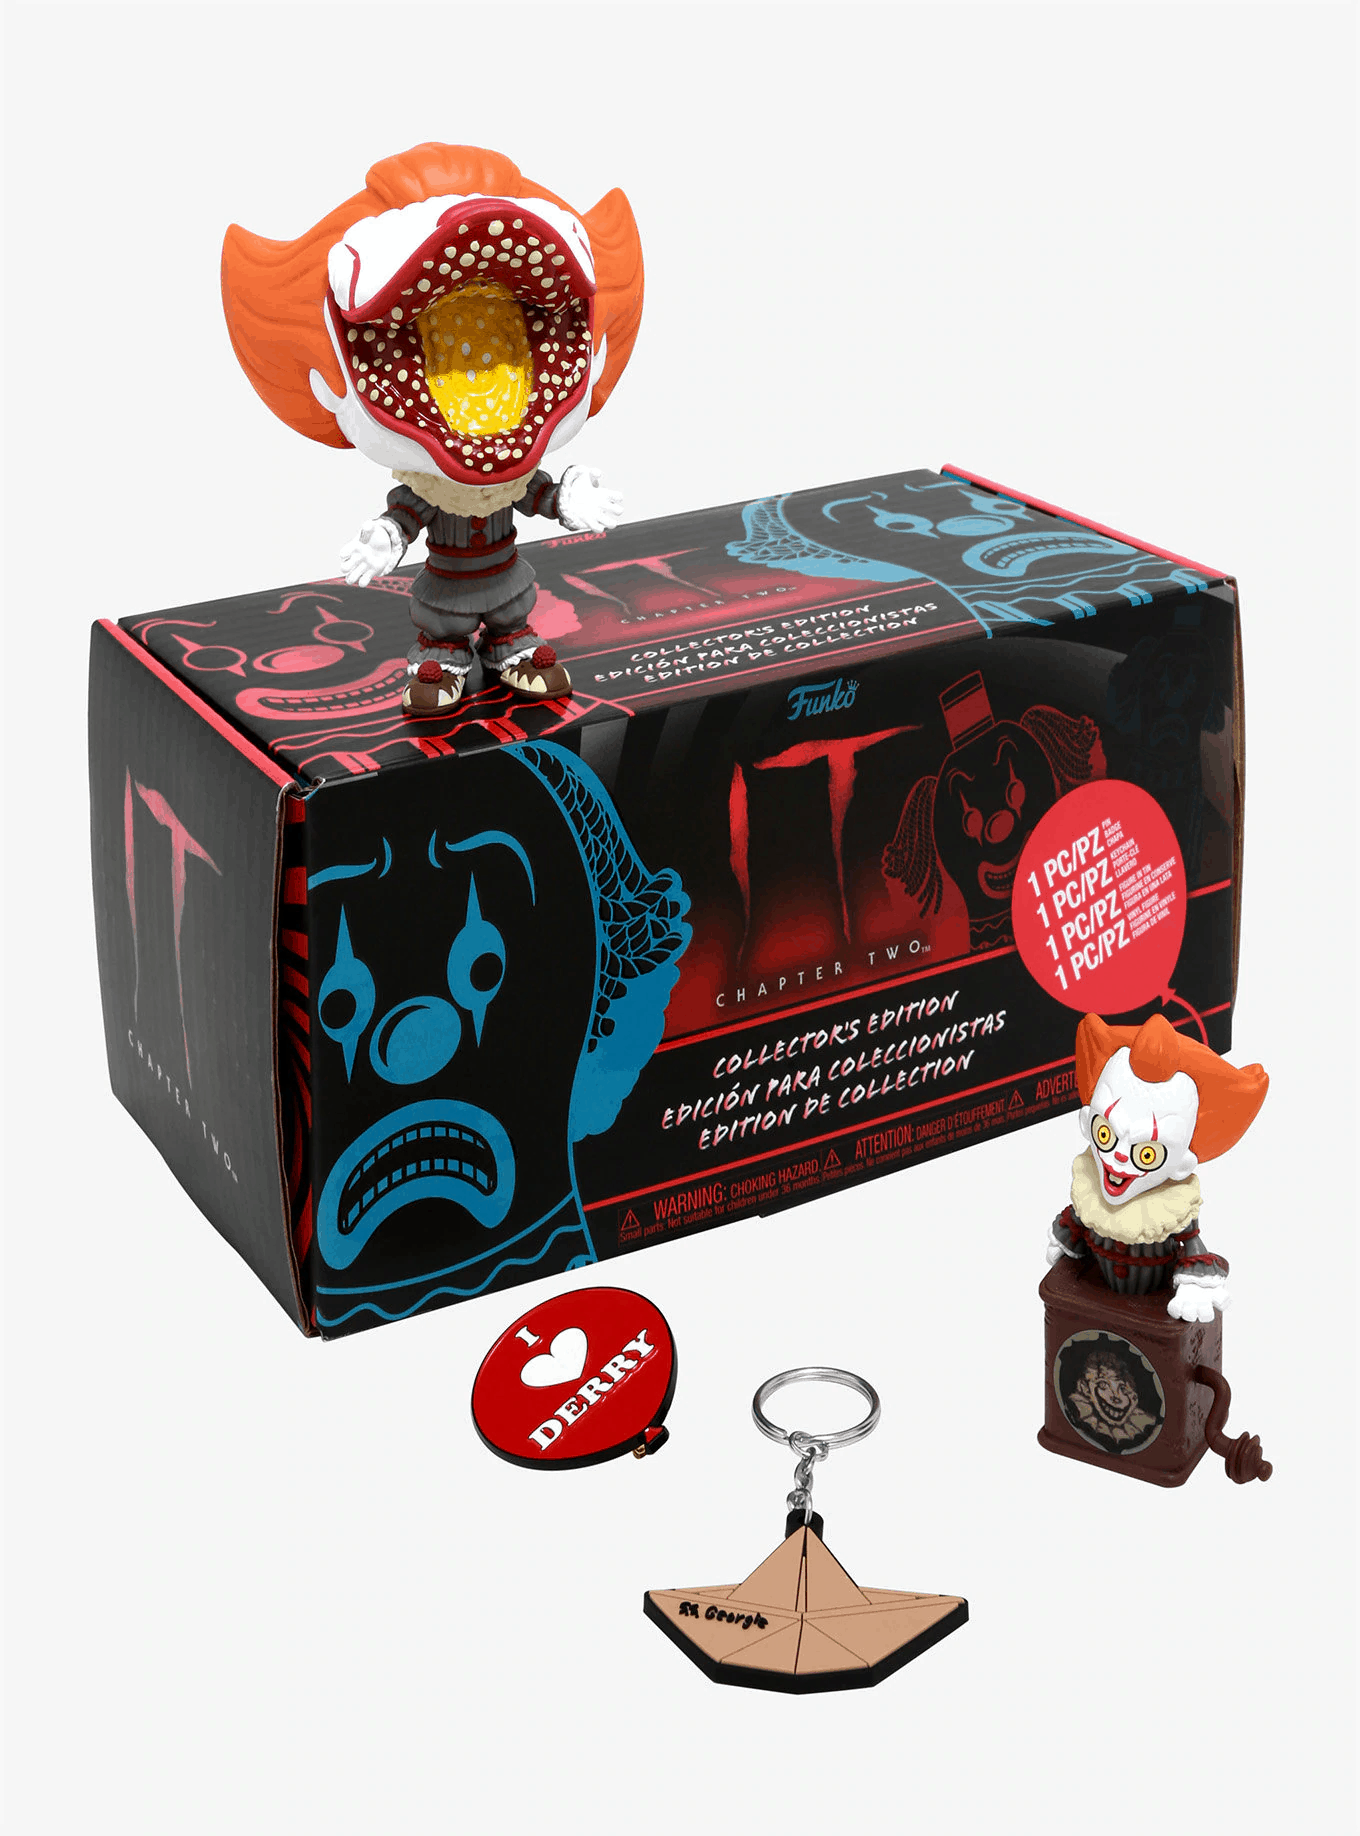 New Hot Topic Funko IT Collectors Box Available Now + Full Spoilers!